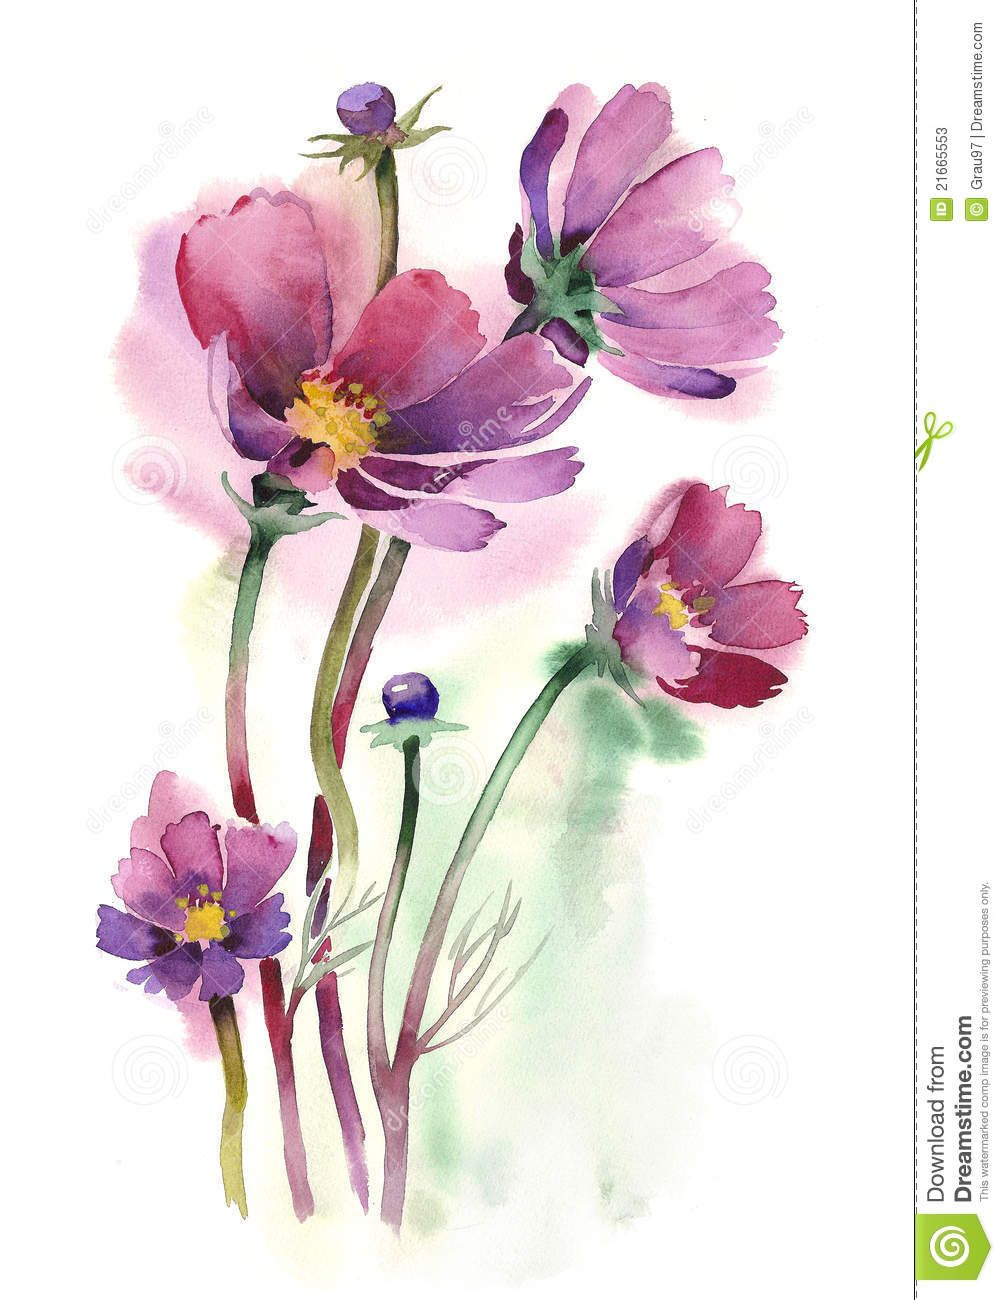 Watercolor cosmos flowers download from over 29 - High resolution watercolor flowers ...